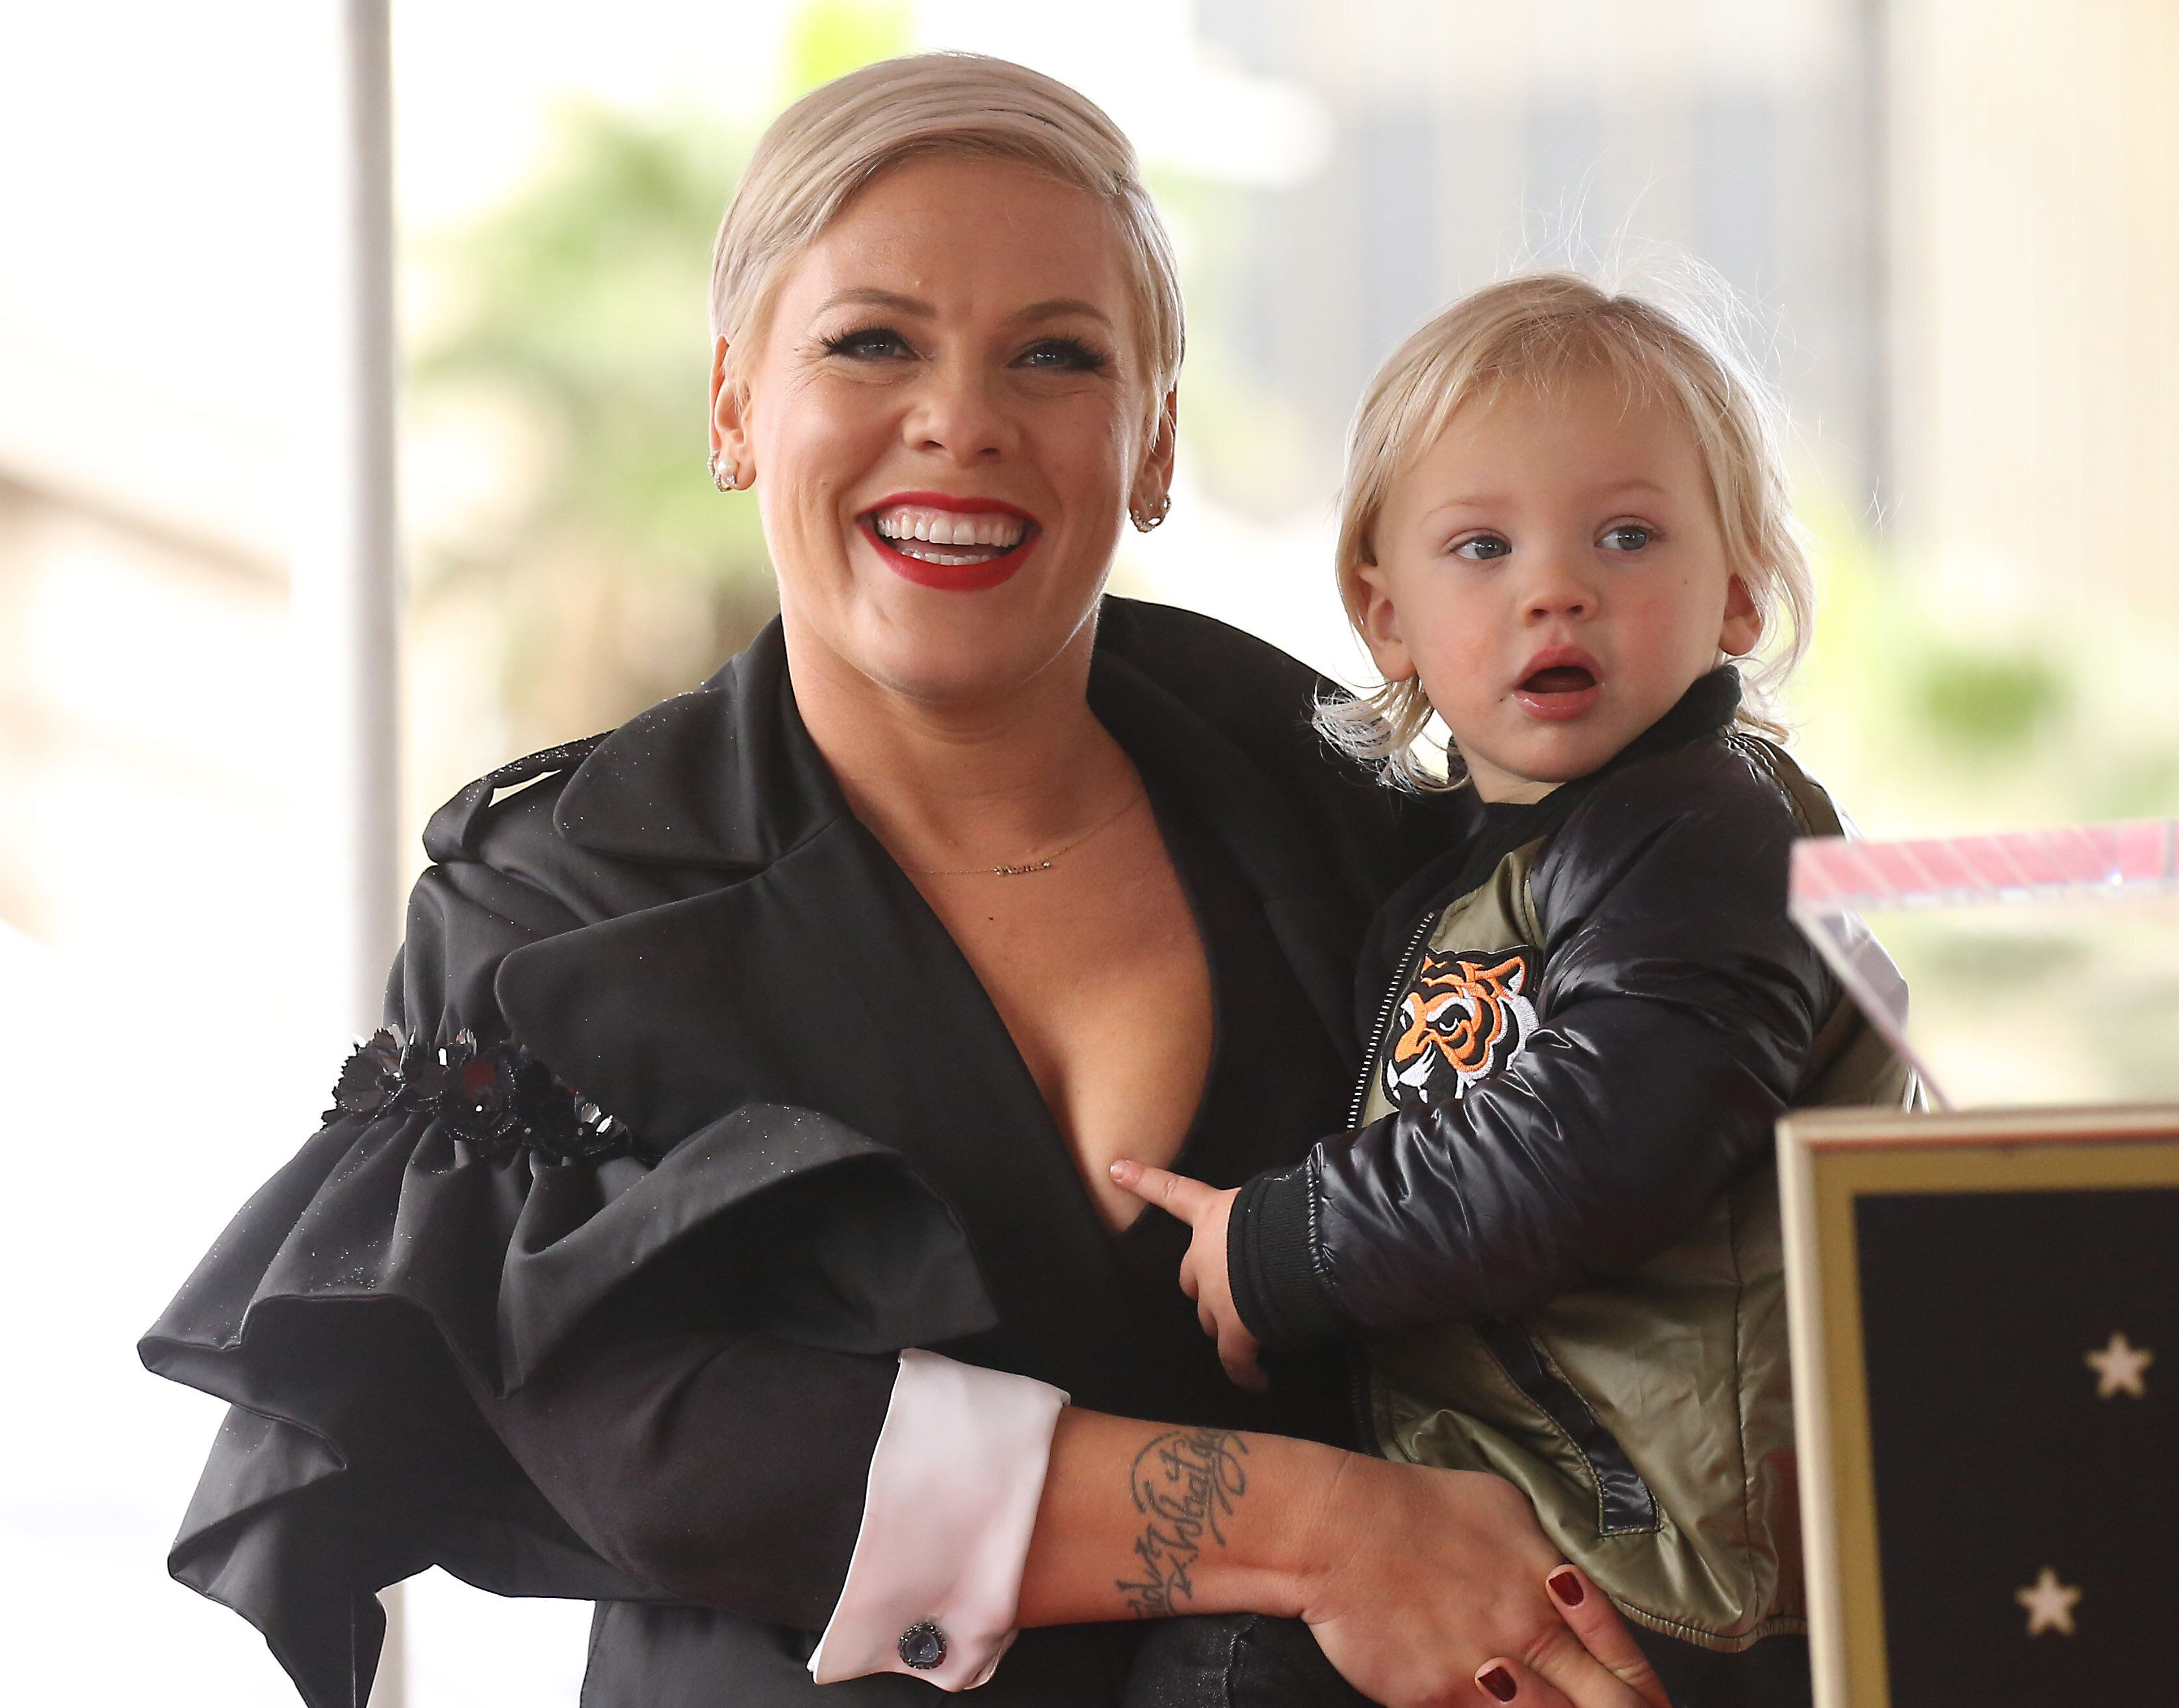 HOLLYWOOD, CALIFORNIA - FEBRUARY 05: Alecia Beth Moore aka Pink with her son, Jameson Moon Hart attend the ceremony honoring Pink with a Star on The Hollywood Walk of Fame held on February 05, 2019 in Hollywood, California. (Photo by Michael Tran/FilmMagic)